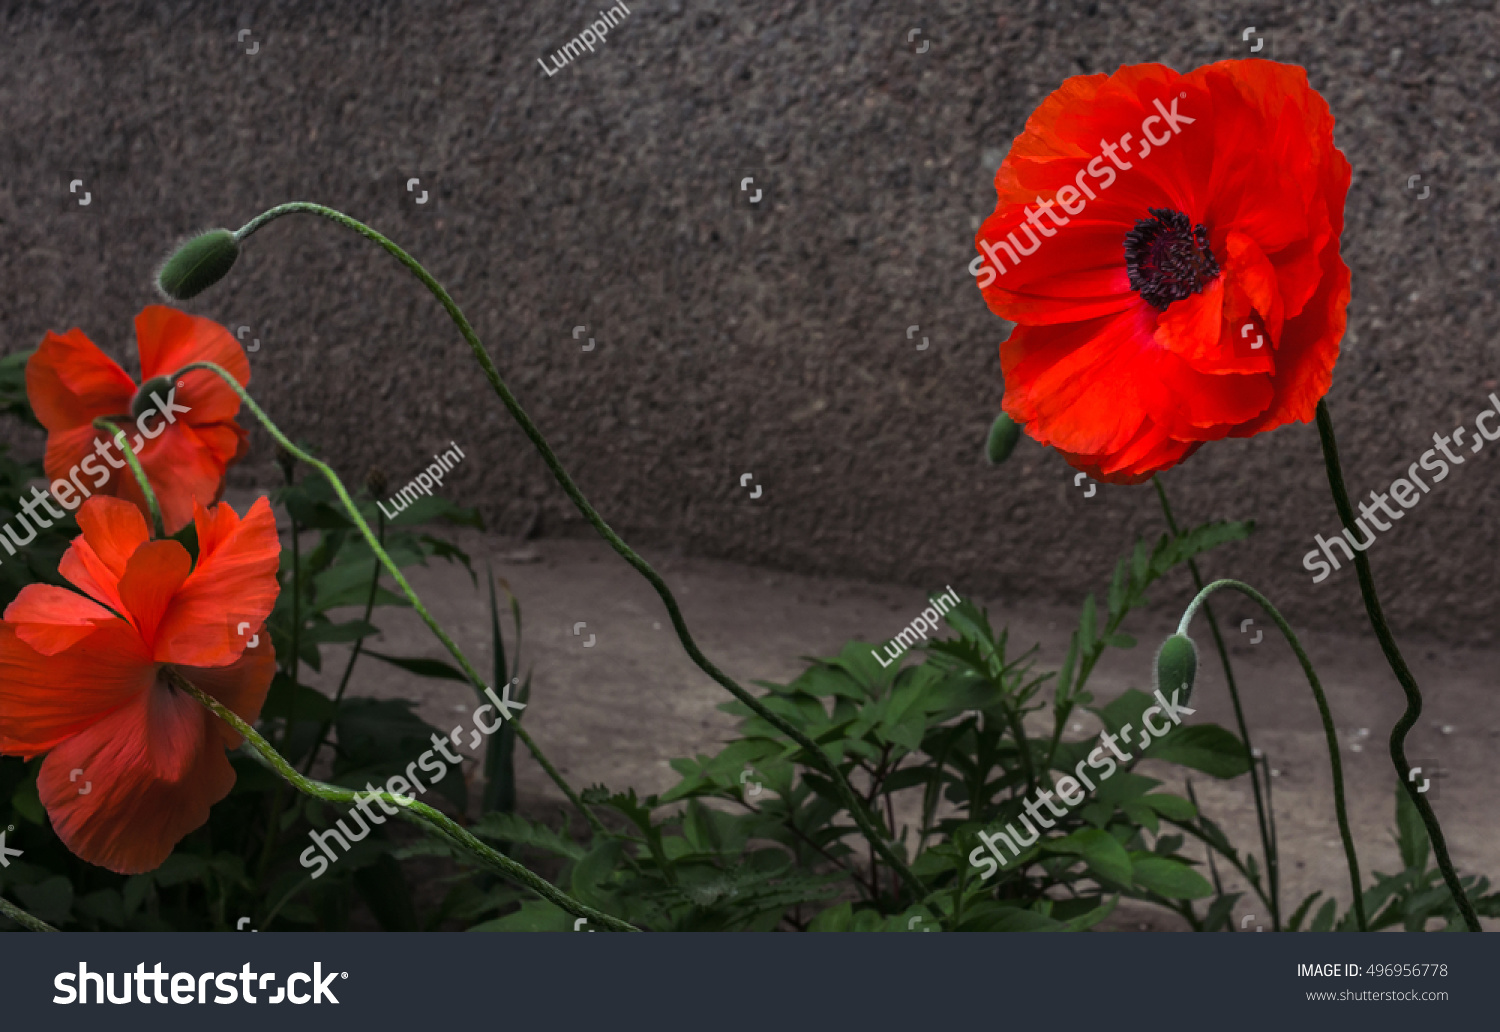 Wild poppy flower symbol remembrance stock photo 496956778 wild poppy flower a symbol of remembrance buycottarizona